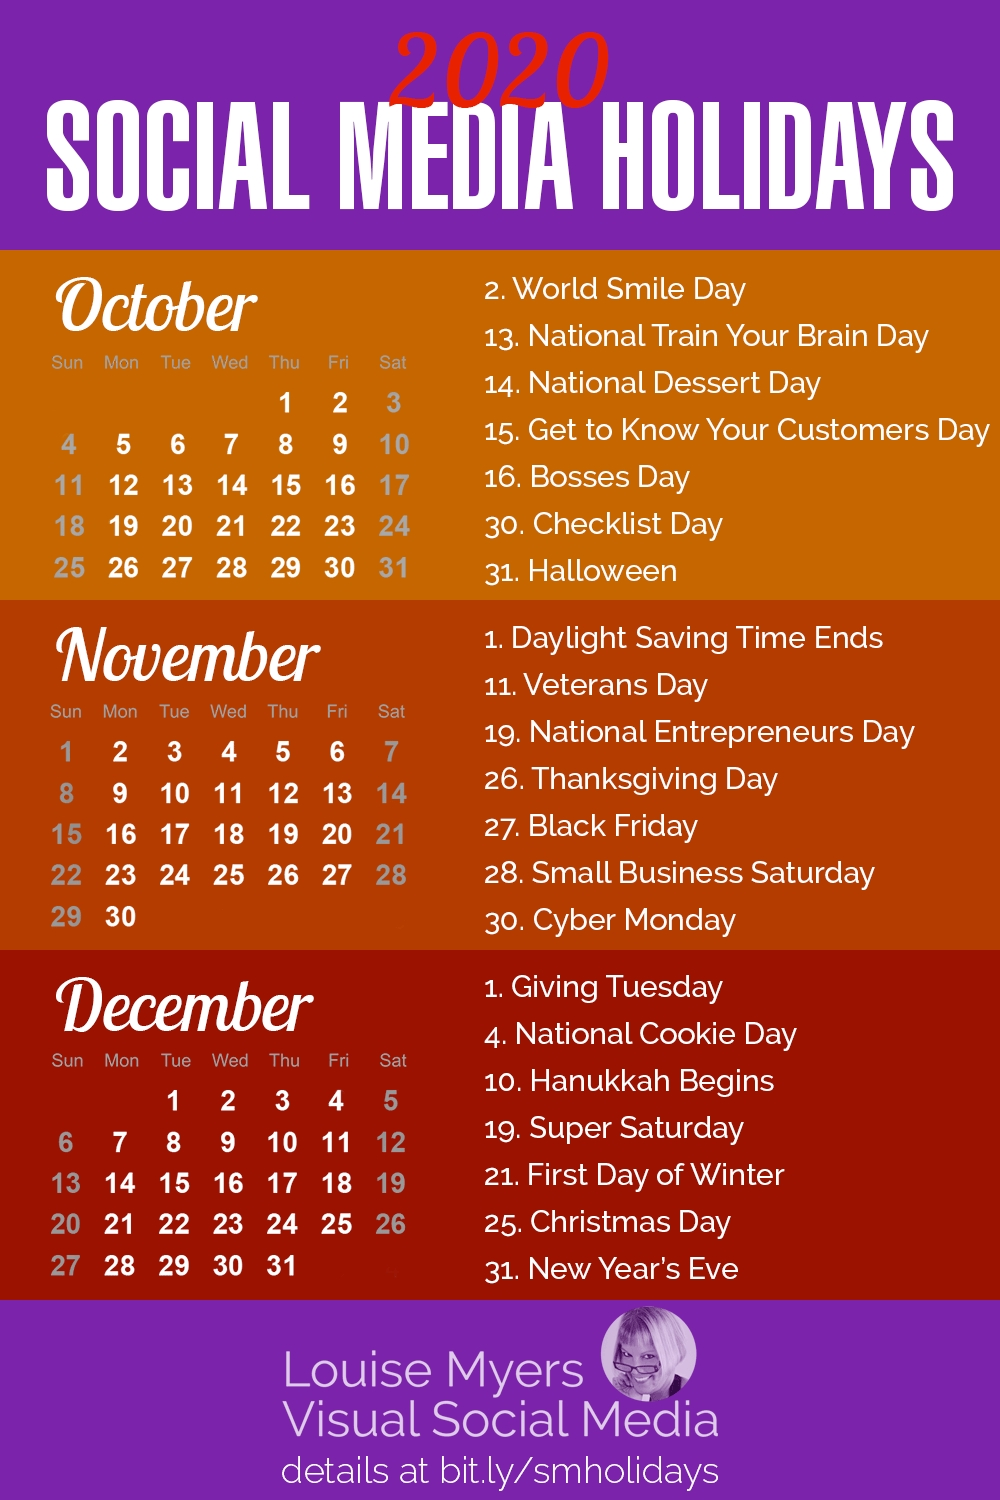 84 Social Media Holidays You Need In 2020: Indispensable!-List By Month Of All Holidays